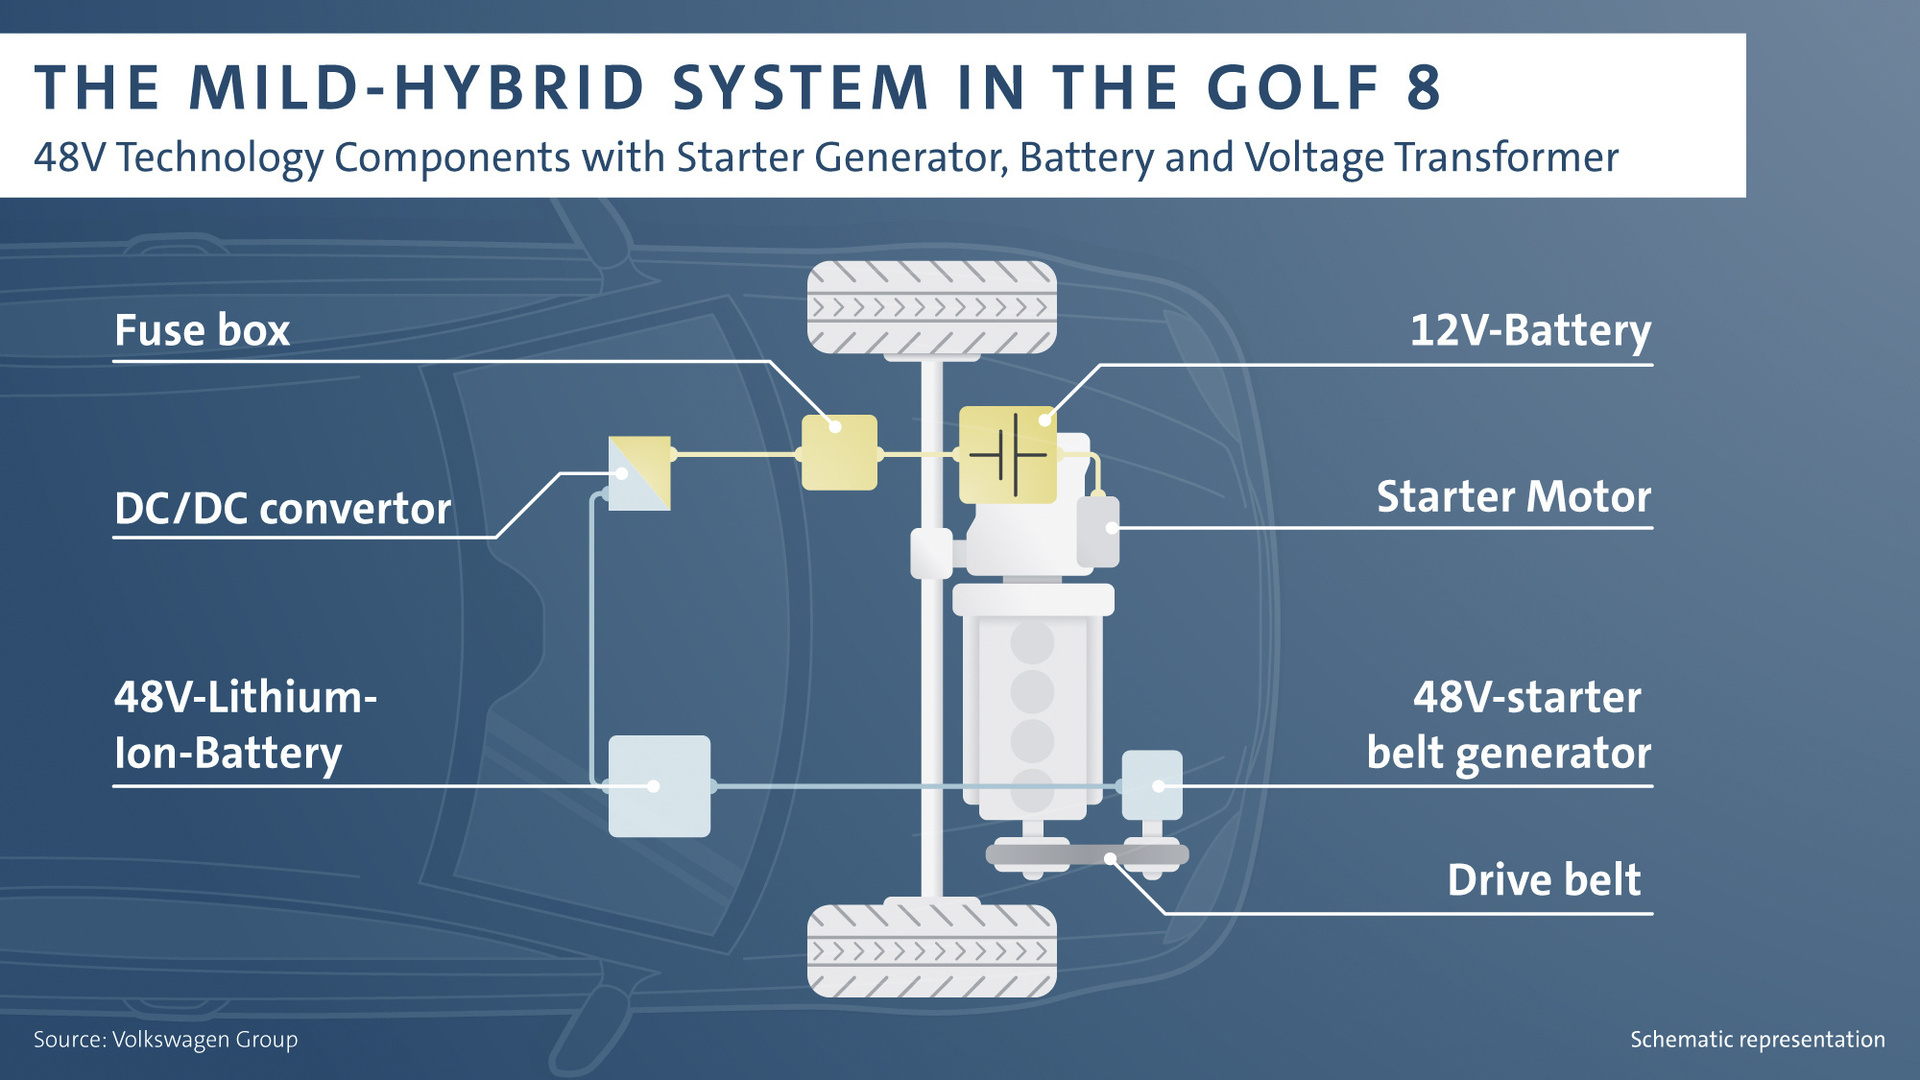 The New Golf: With 48v Technology